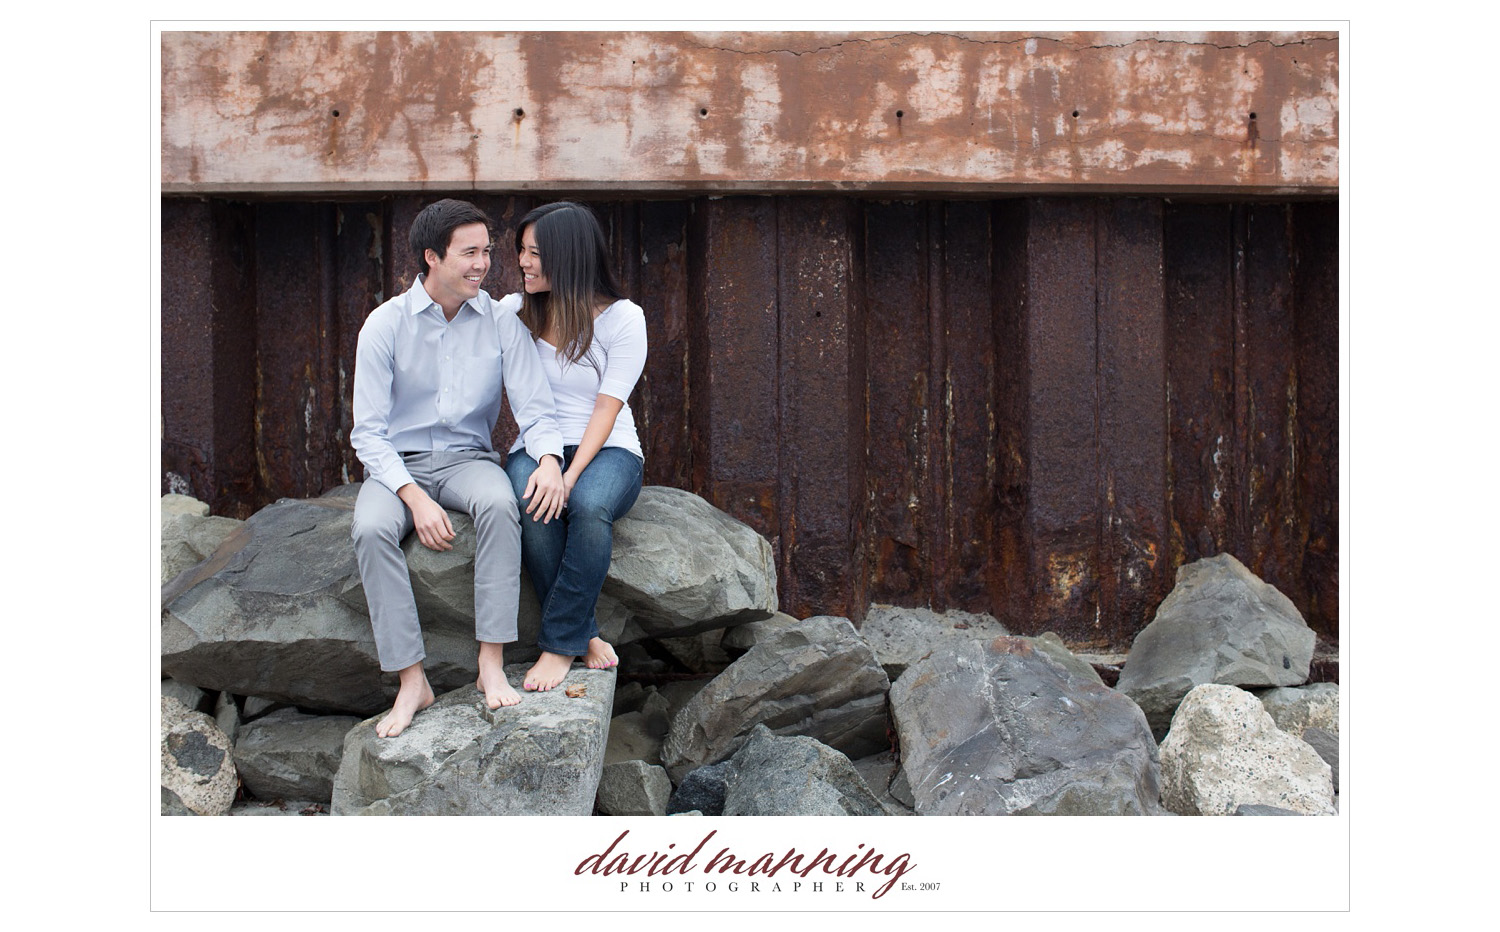 Del-Mar-Ramona-Julian-Engagement-Photos-David-Manning-Photographers-0001.jpg